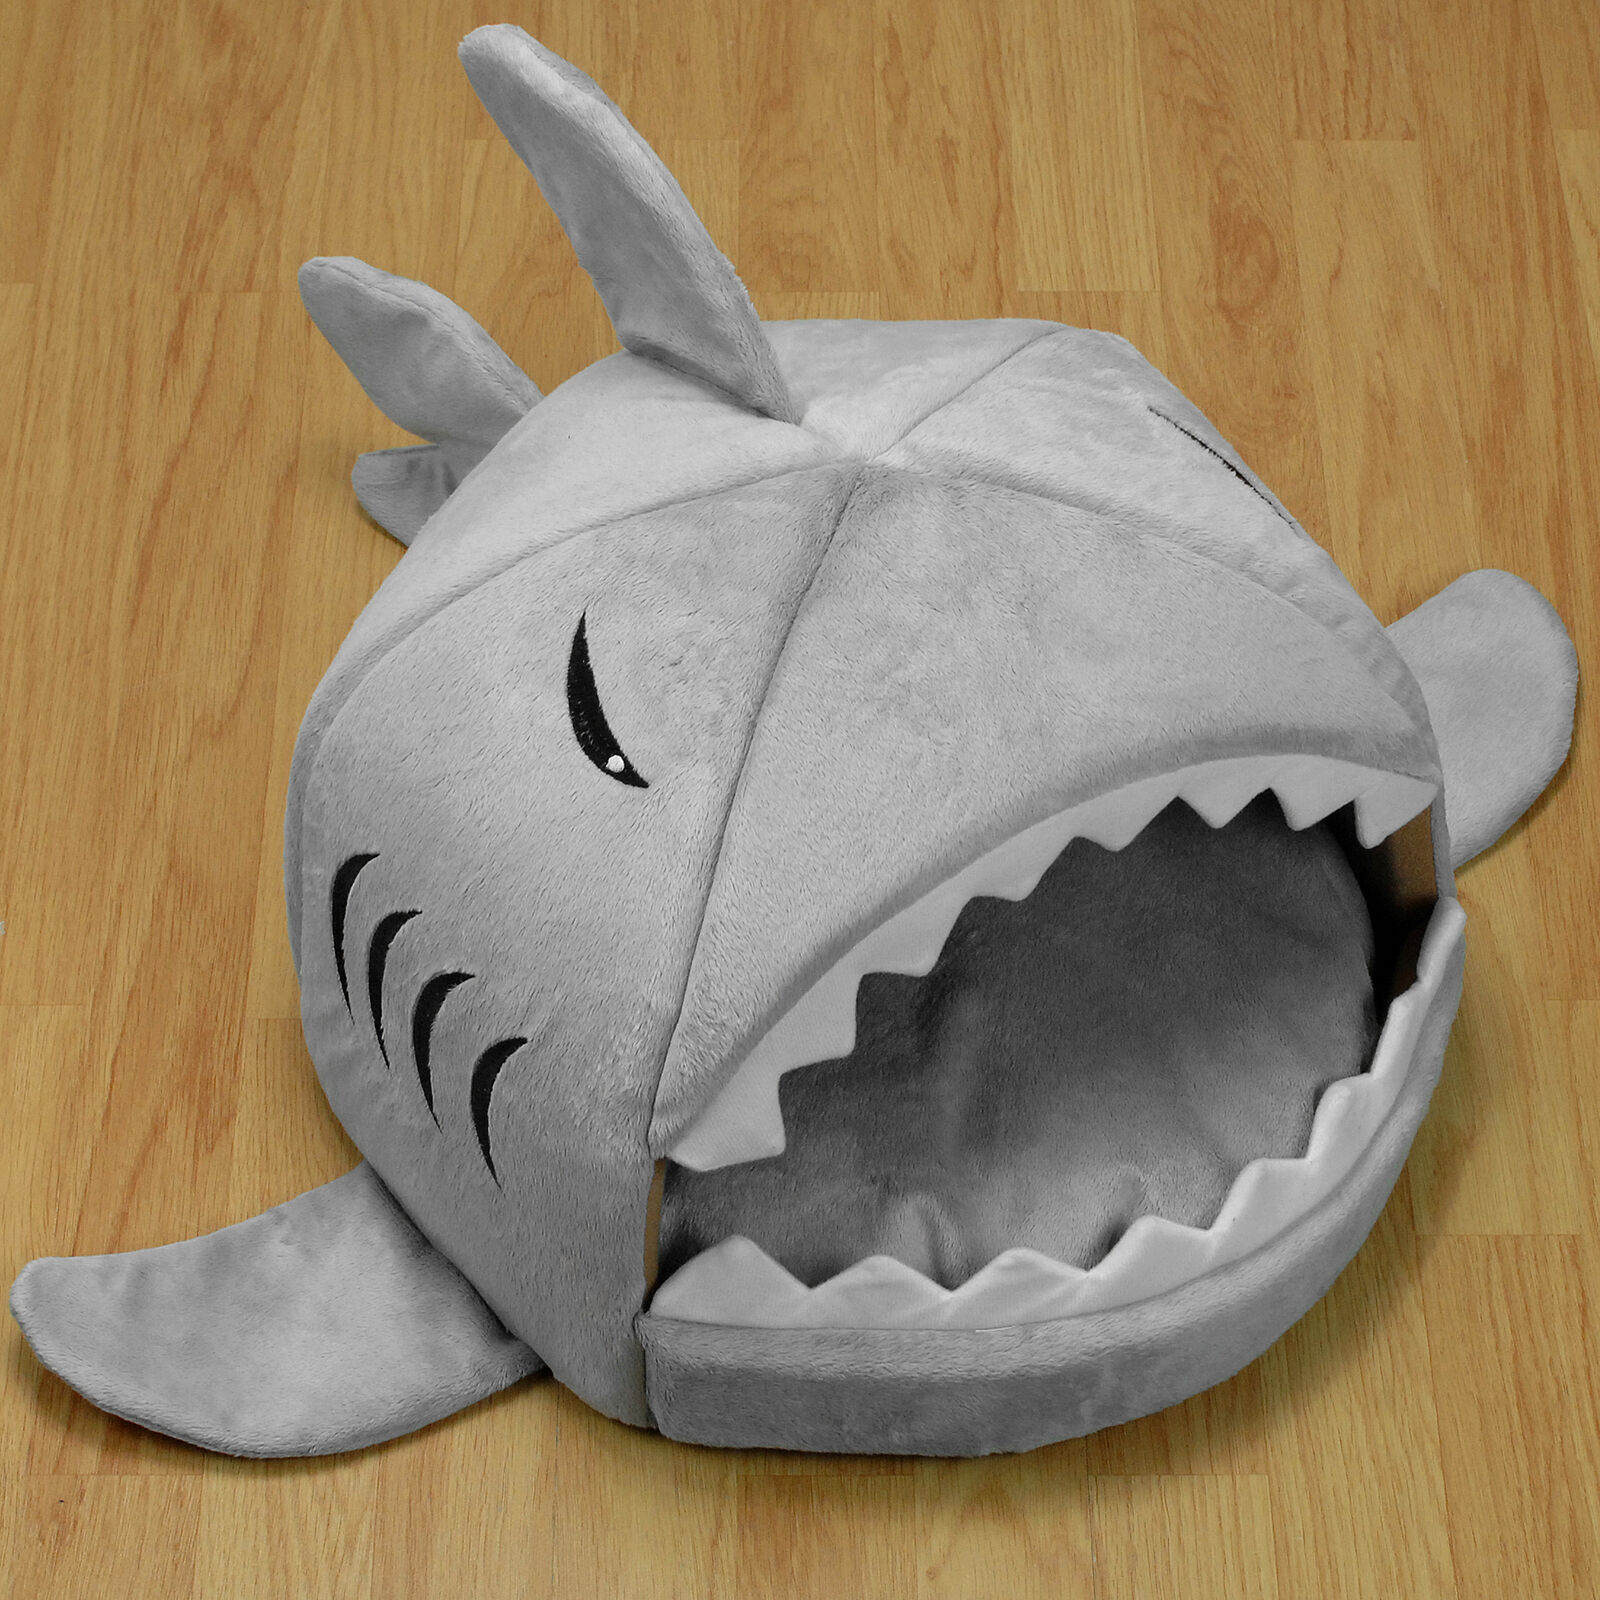 Cat/Kitten/Puppy/Dog Small Soft Grey Snug Warm Igloo Shark Mouth Bed/Cave/House